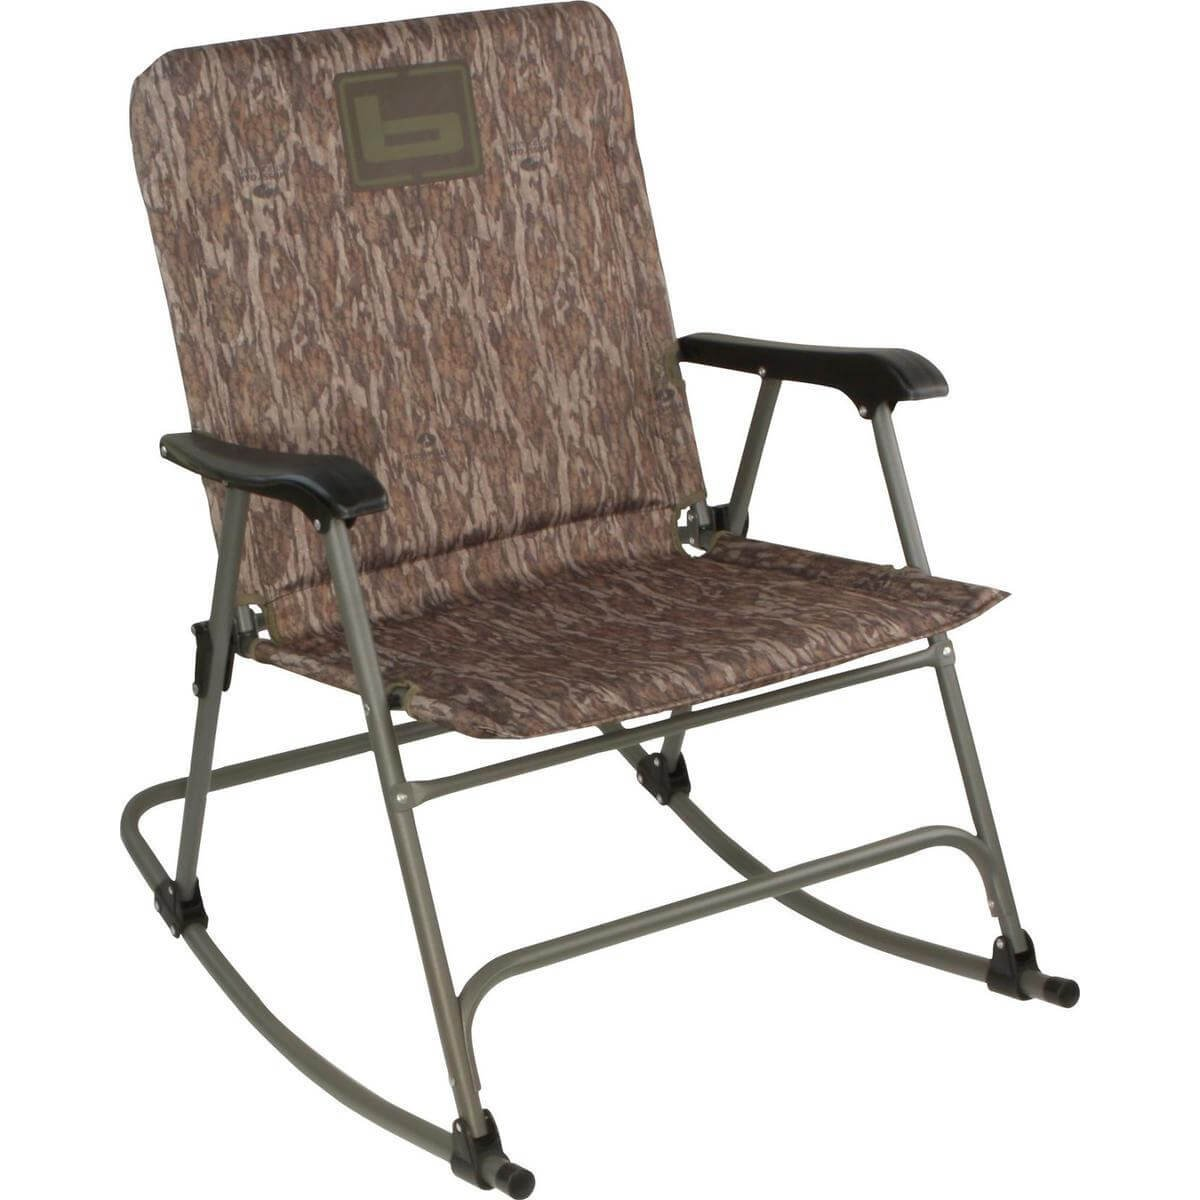 Banded B08712 Rocking Chair Bottomland Hunting Gear by Banded (Image #1)